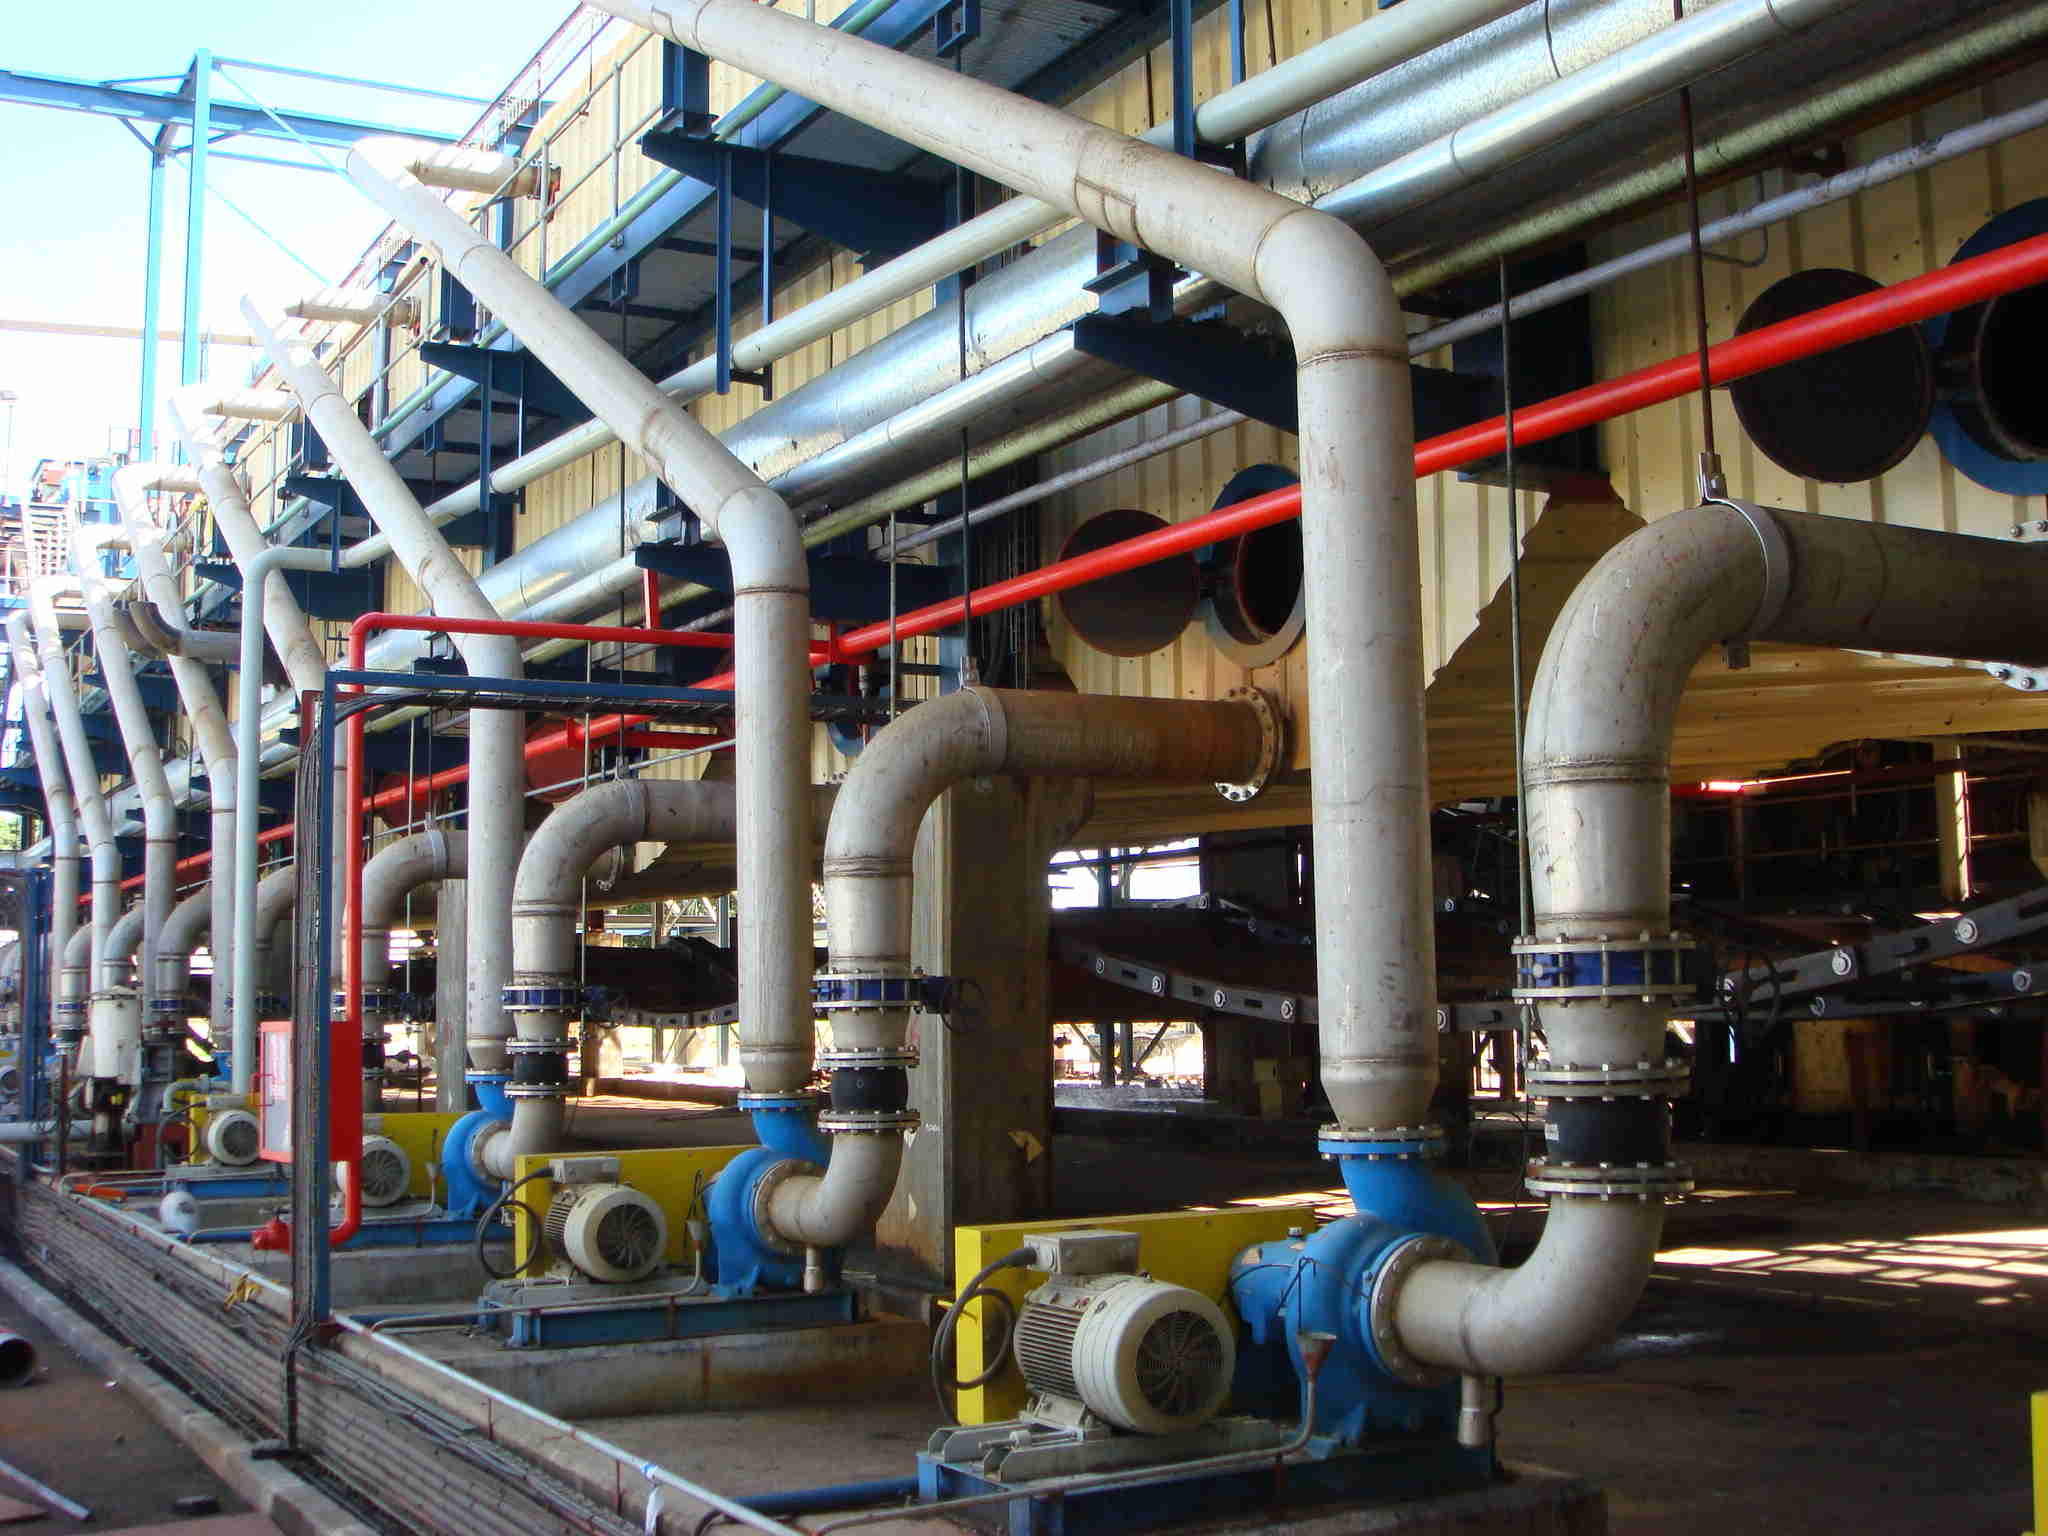 Piping Works Process Pipeline Works Sugar Pipeline